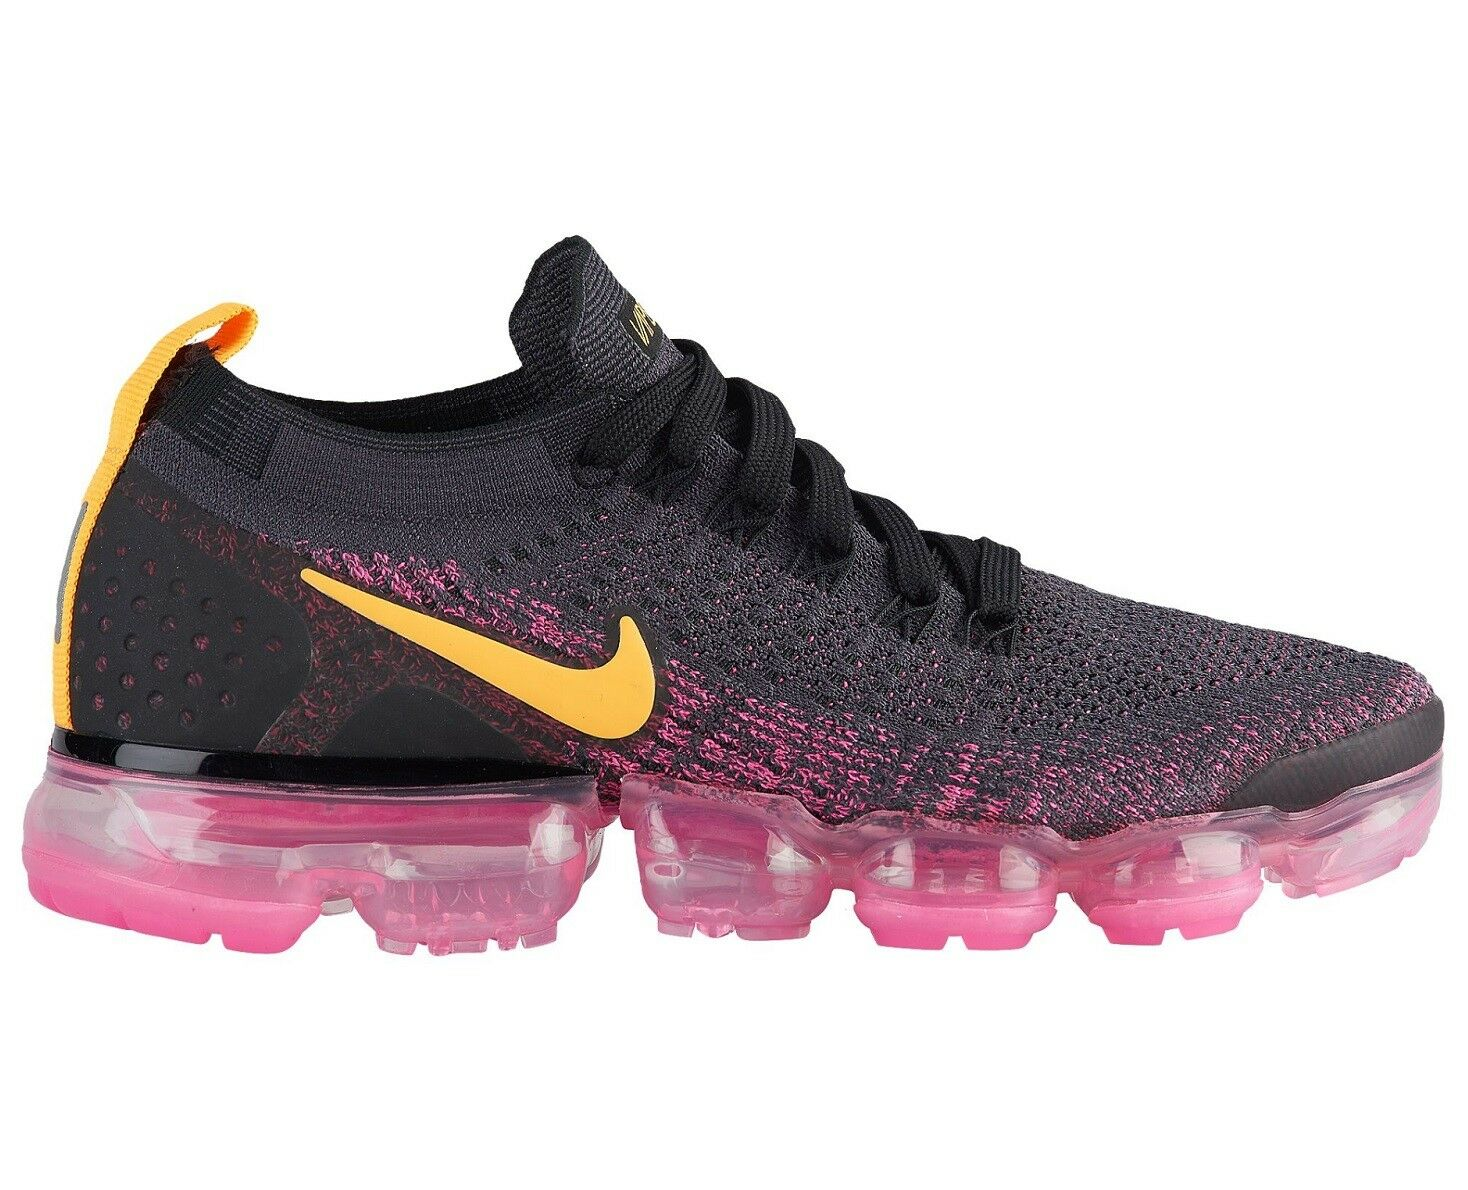 Nike Air Vapormax Flyknit 2 Womens 942843-008 Grey Pink Running shoes Size 7